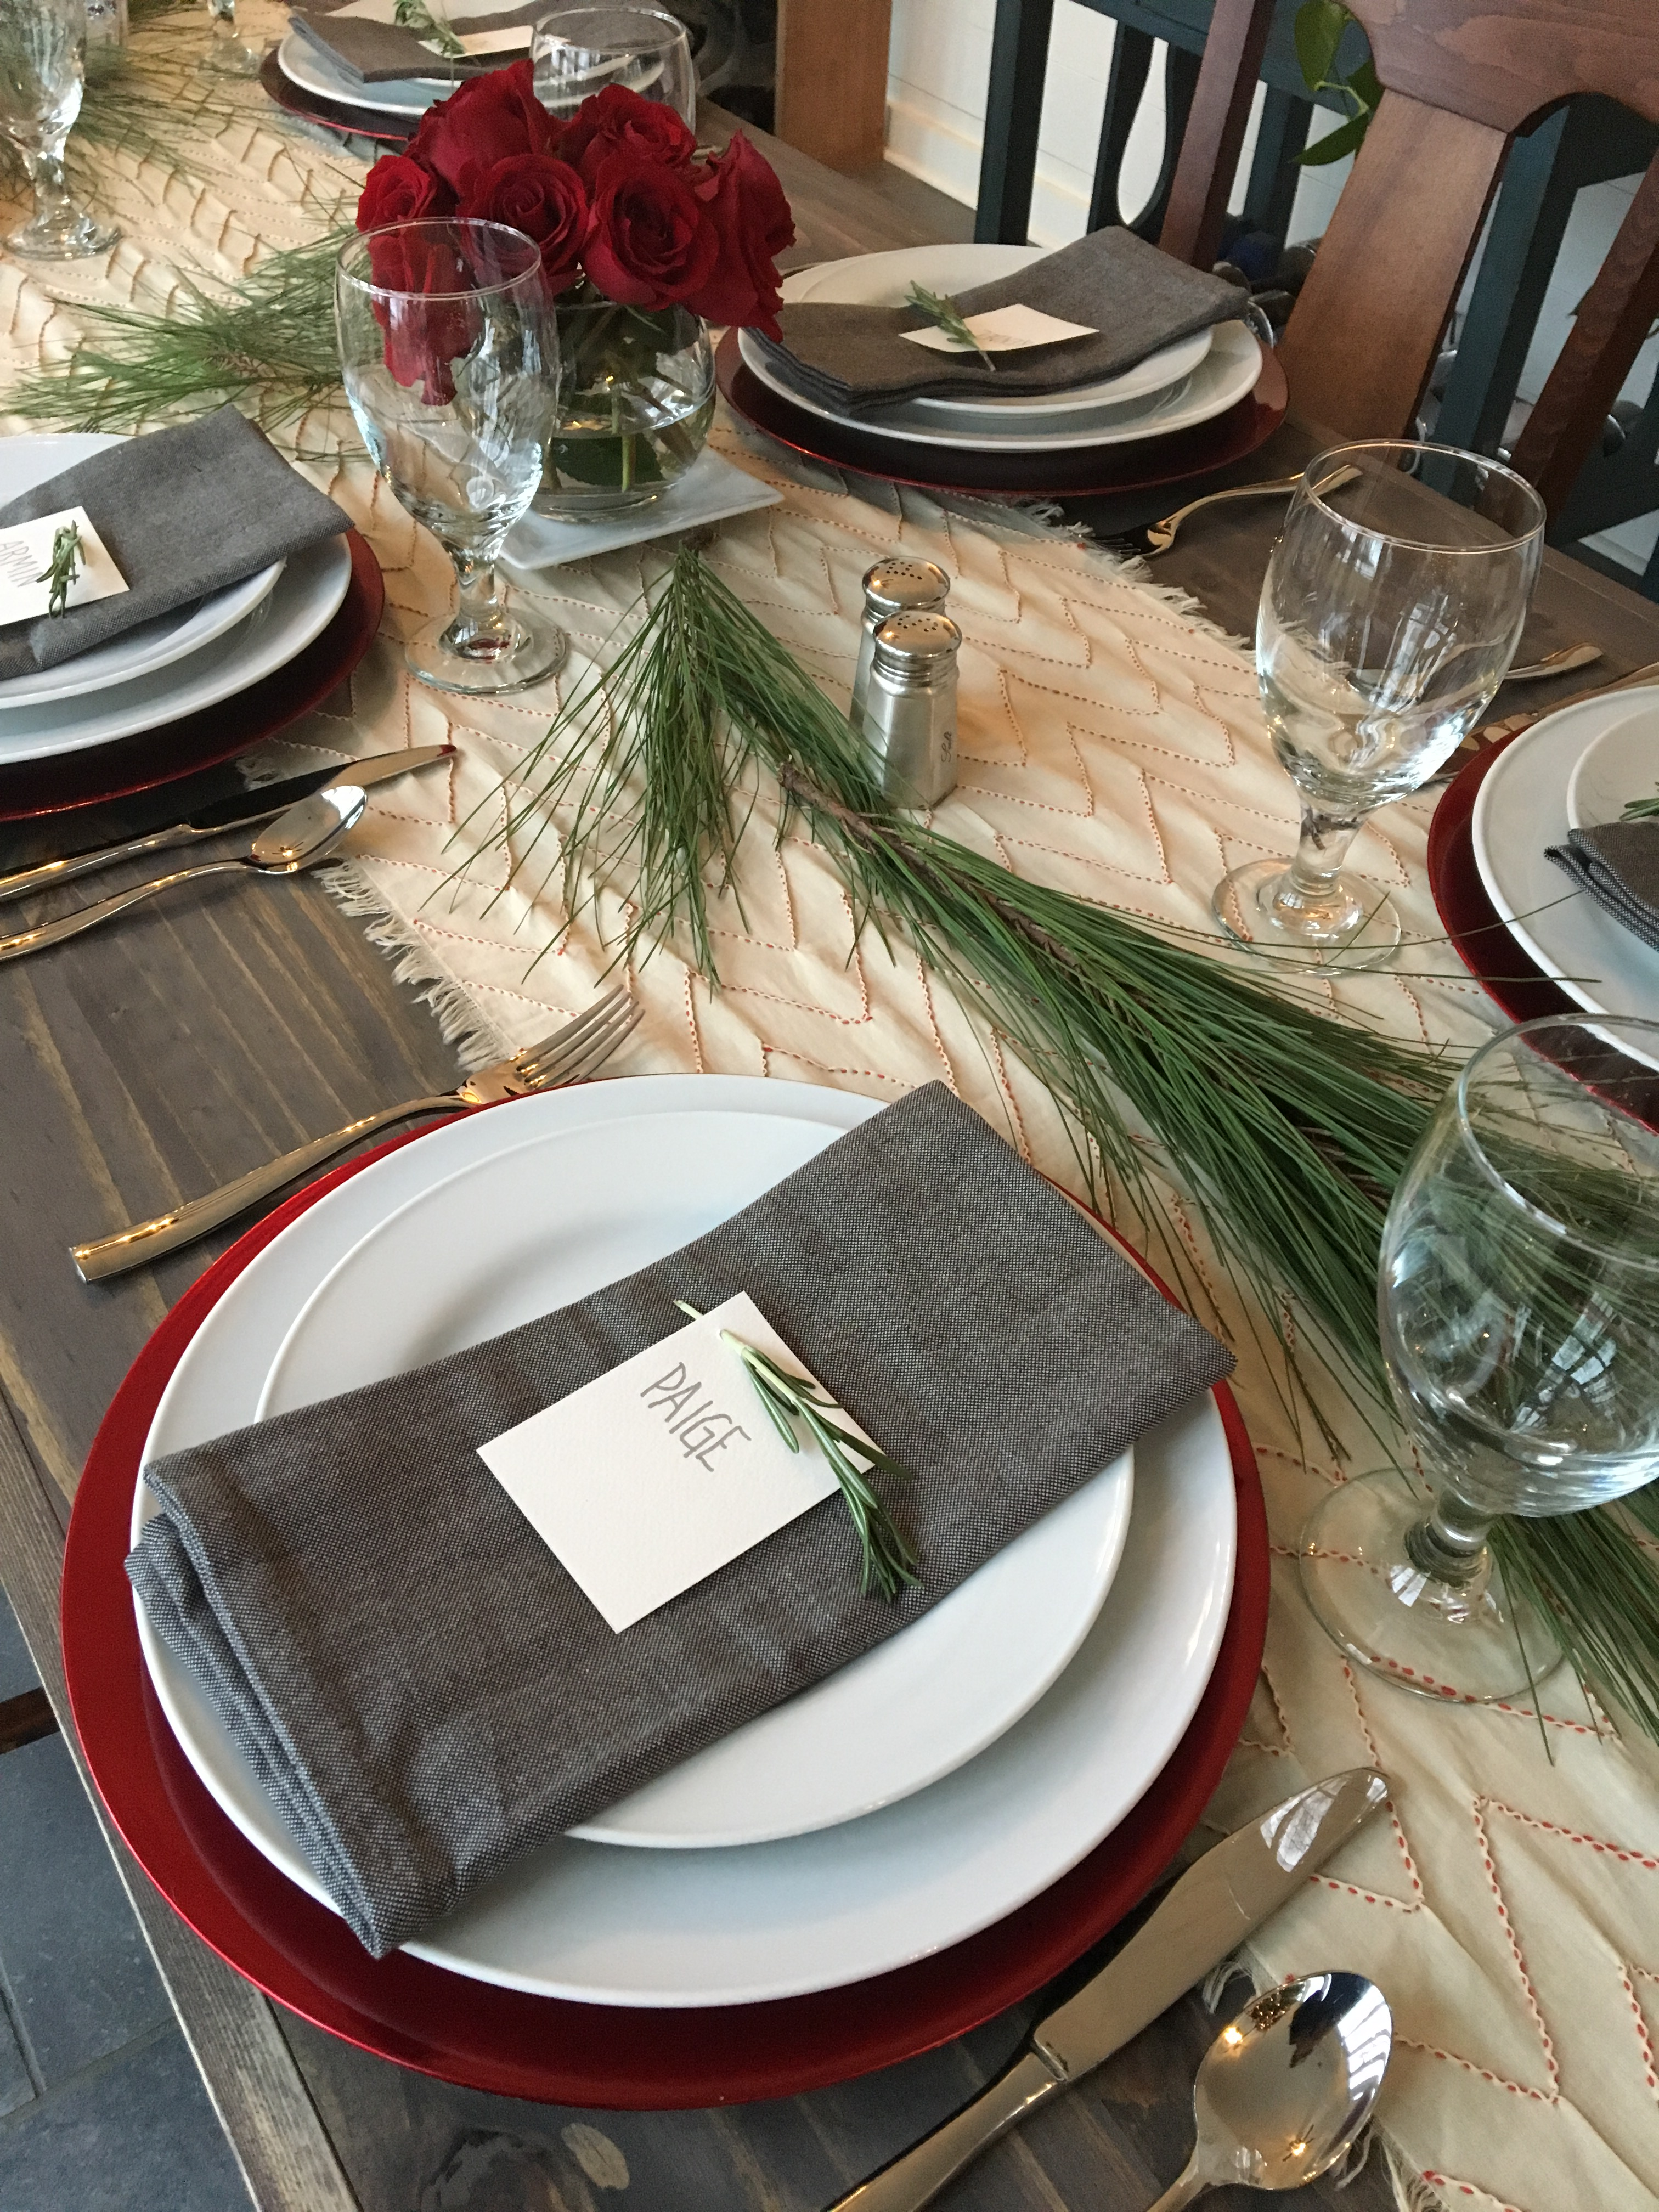 2017 Christmas Paige placesetting